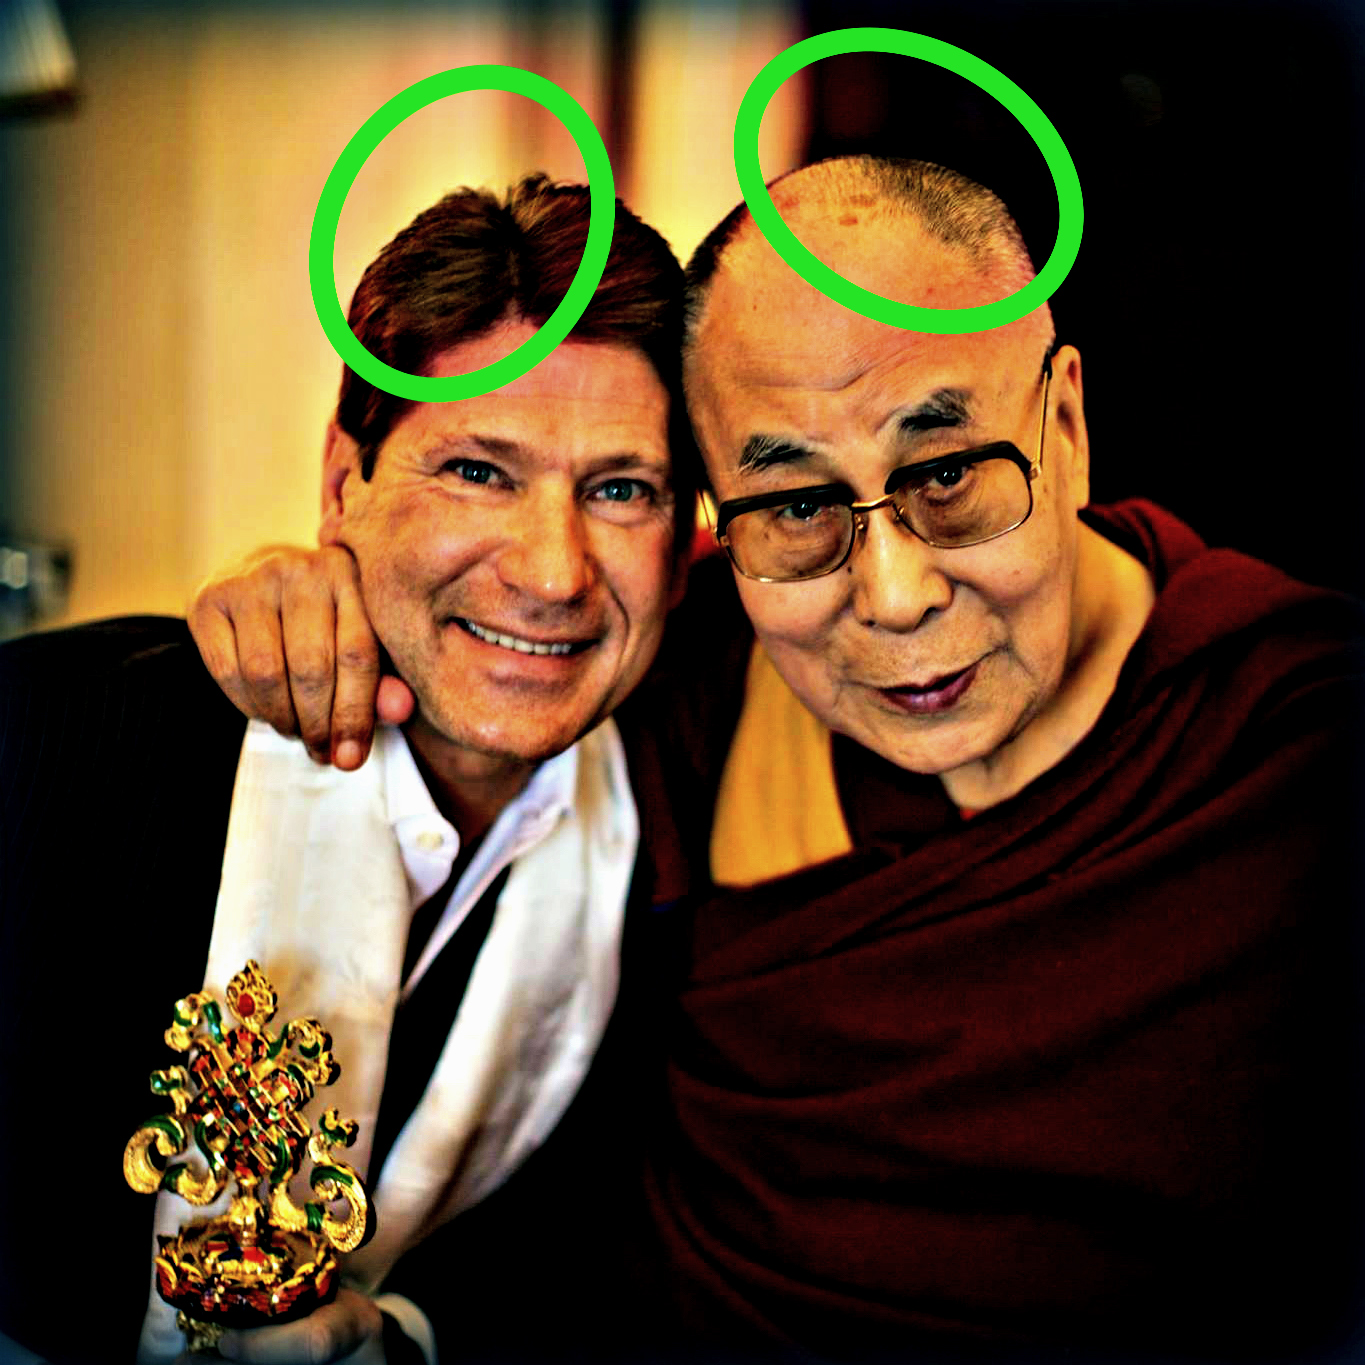 Episode 2.3: The Dalai Lama, Conscious Contact, and 12 Stepping as Contemplative Practice—The Kevin Mello Interview